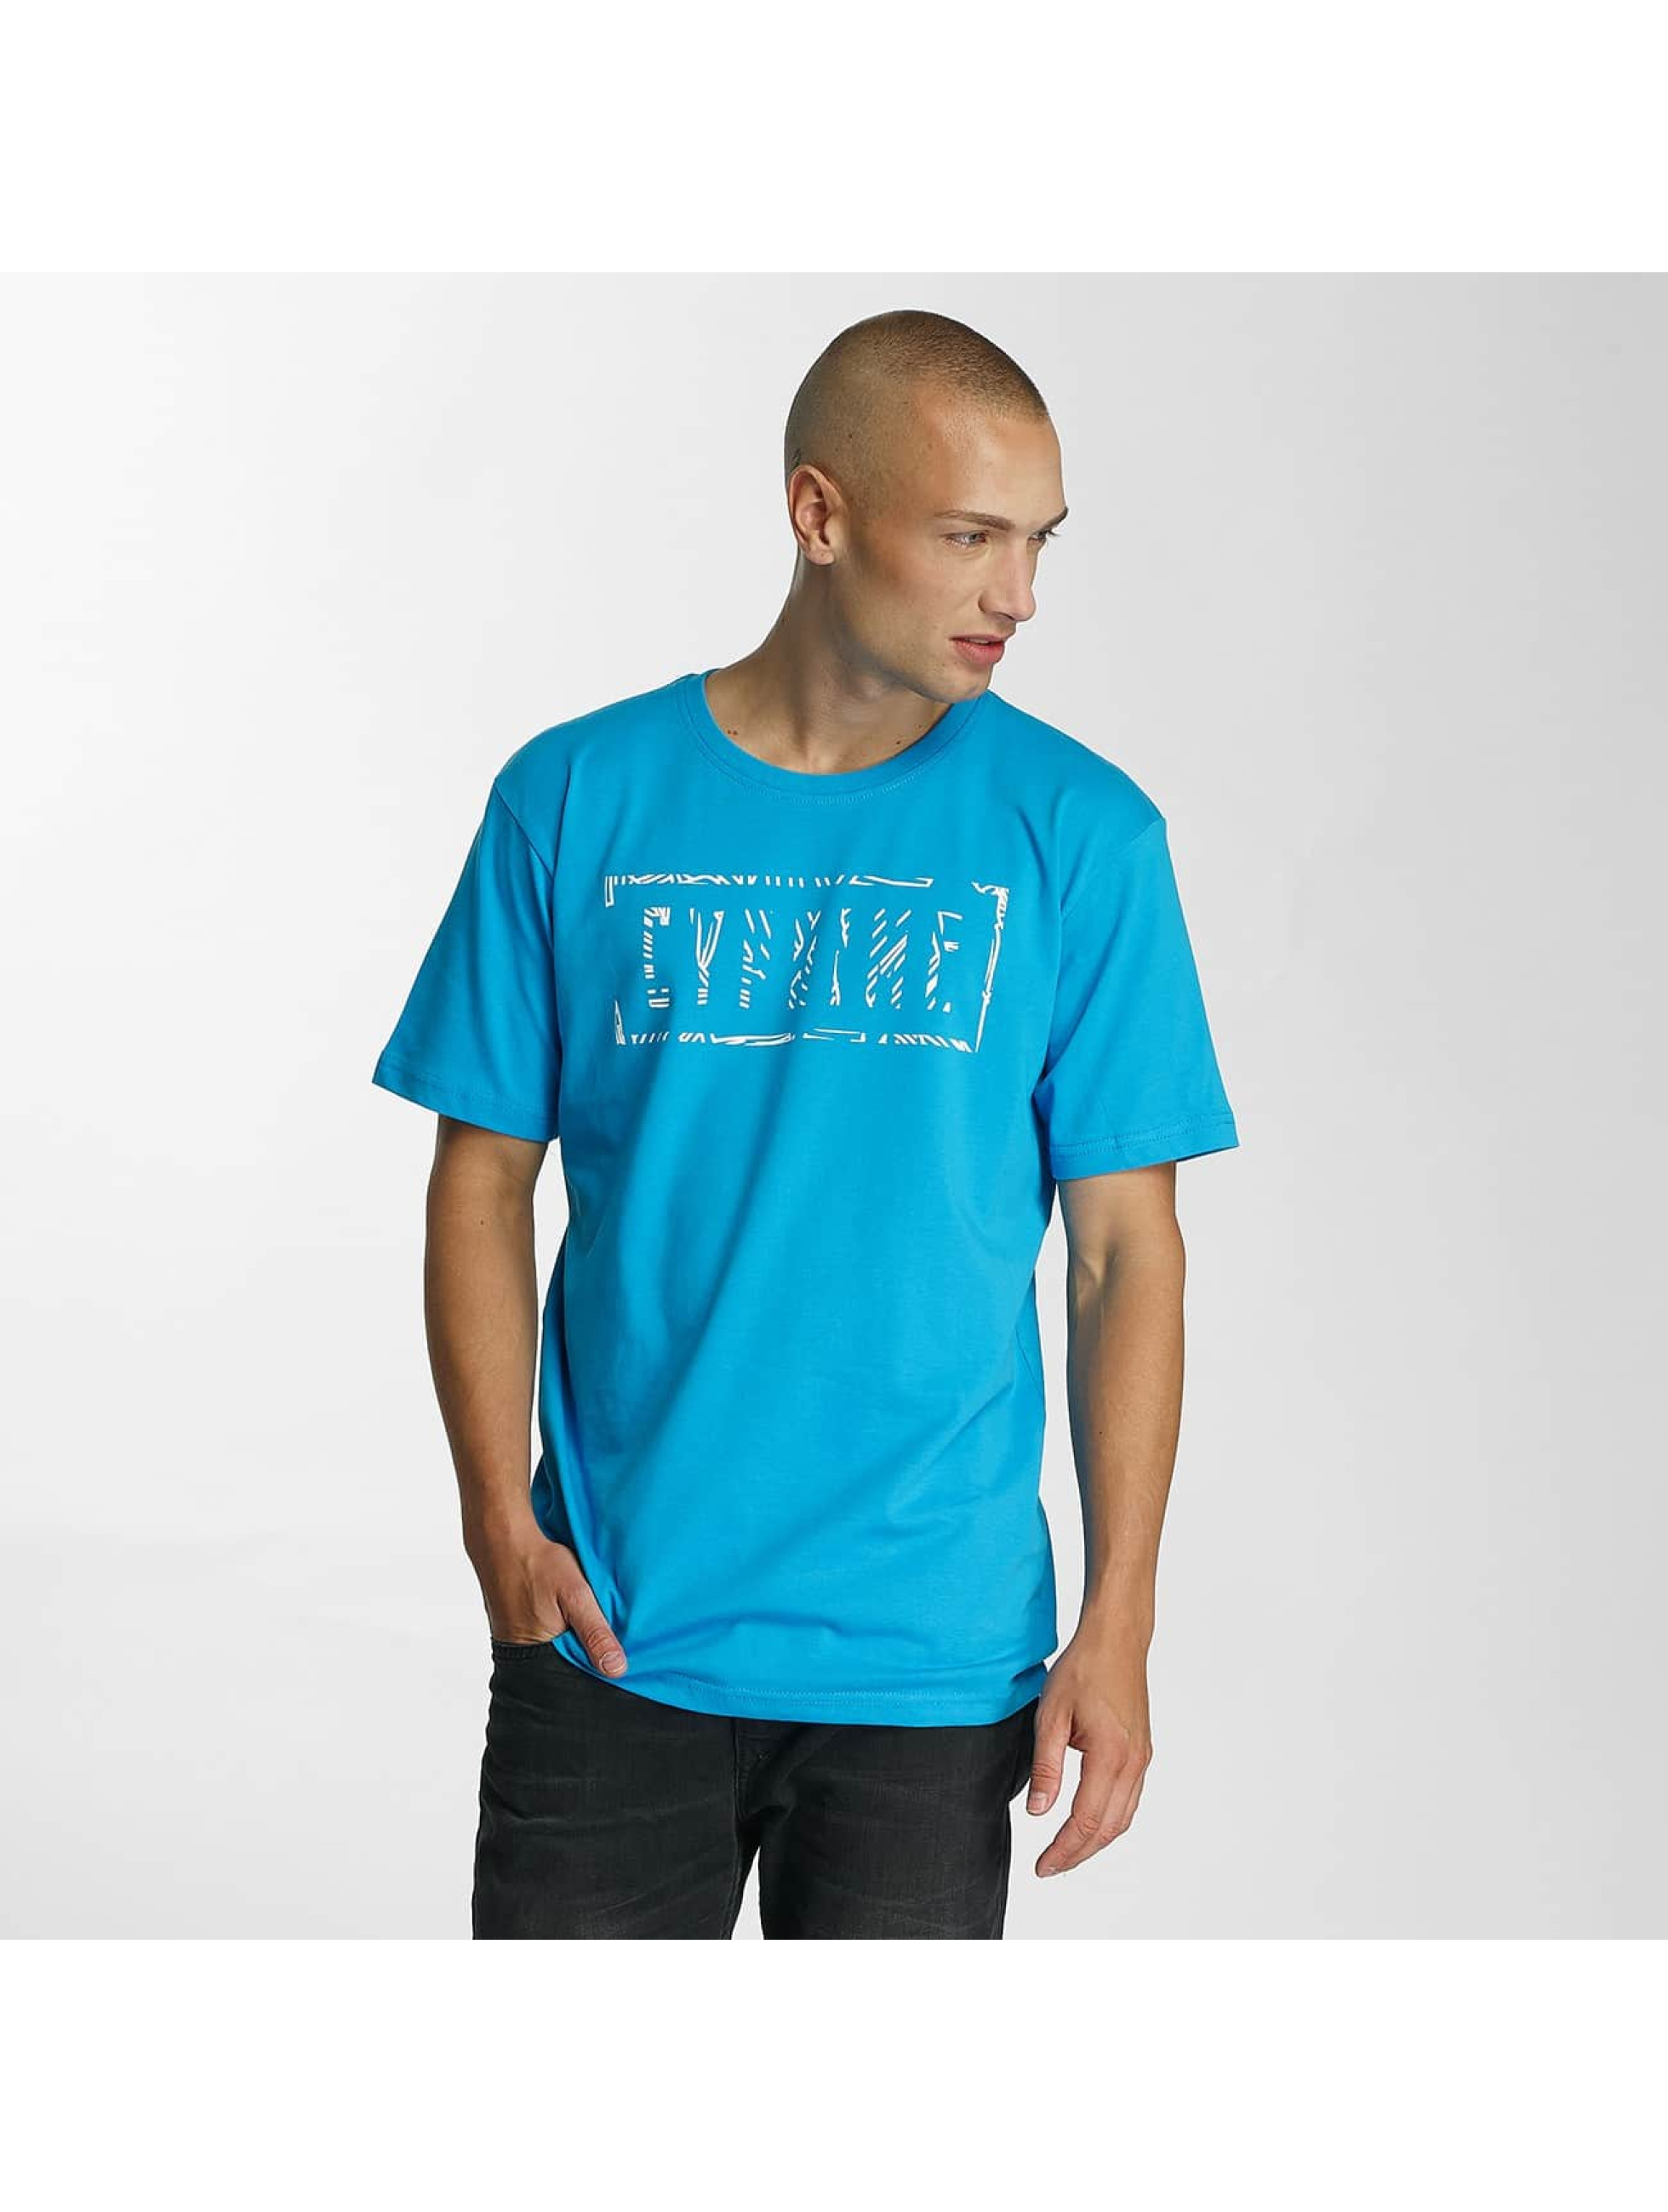 Cyprime / T-Shirt Cerium in turquoise XL